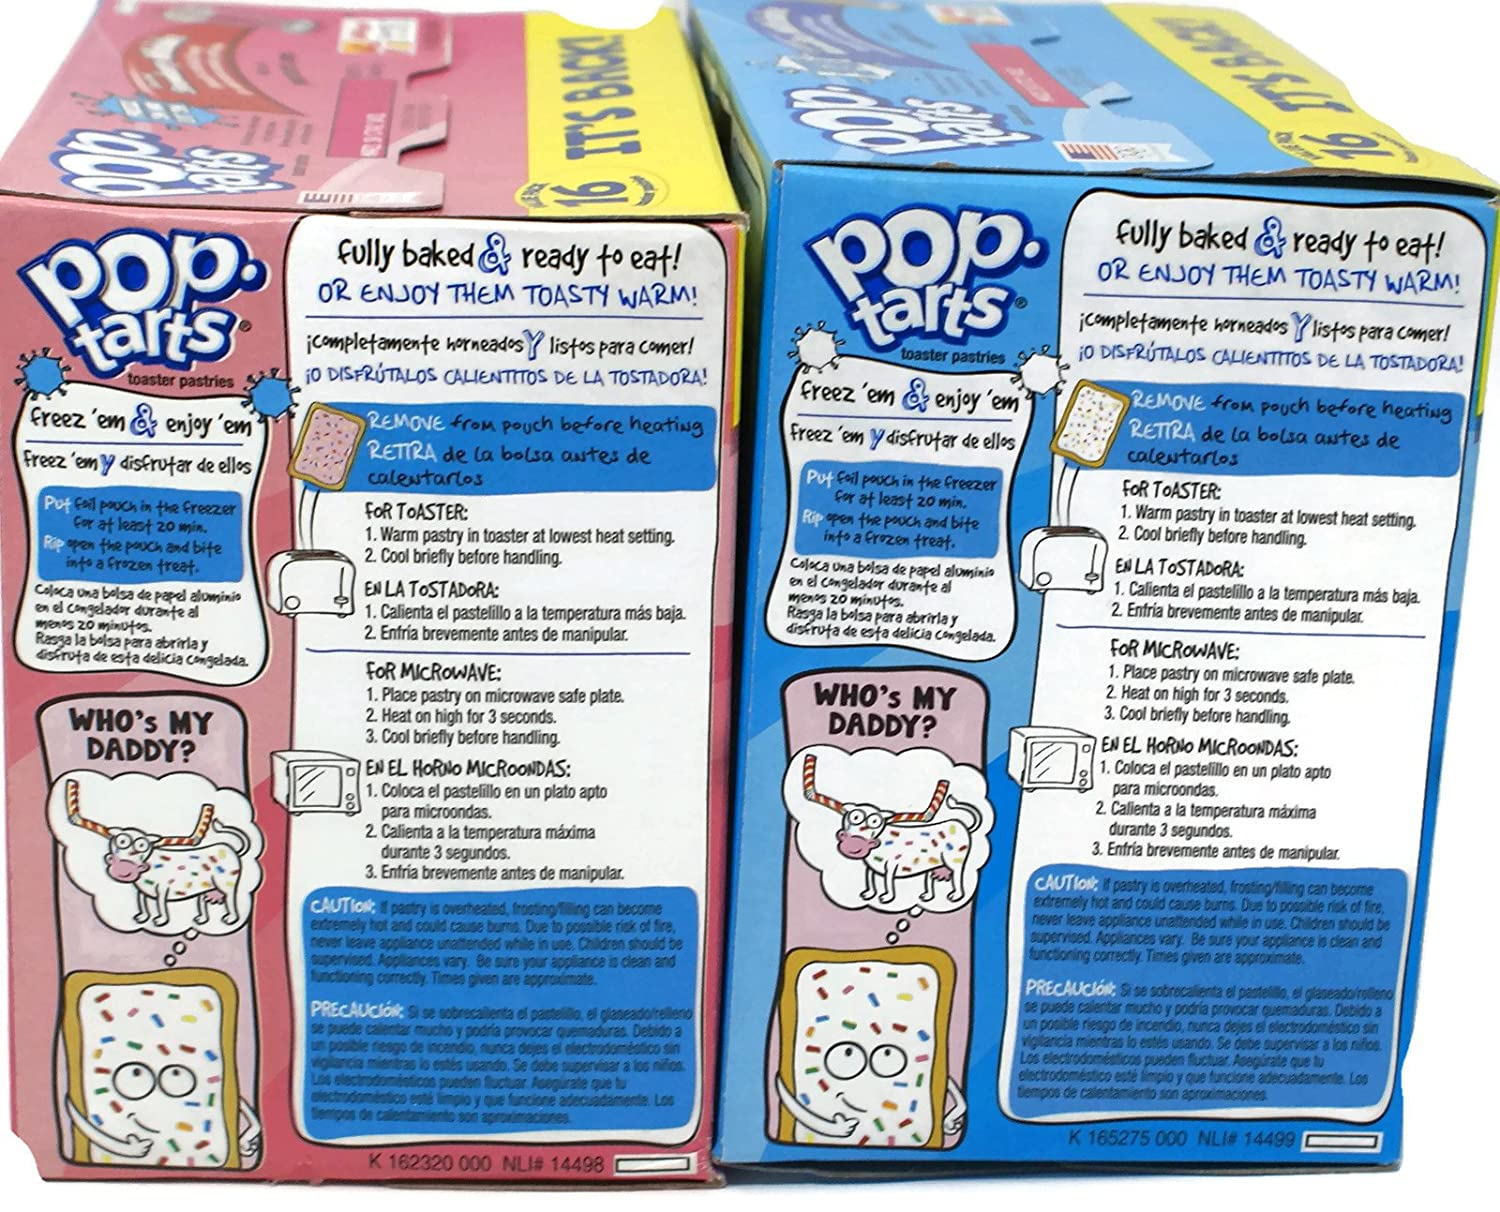 Amazon.com: Variety Pack - Kelloggs Pop Tarts Toaster Pastries (1 lb 12.2 oz) - Frosted Vanilla Milkshake, Frosted Strawberry Milkshake: